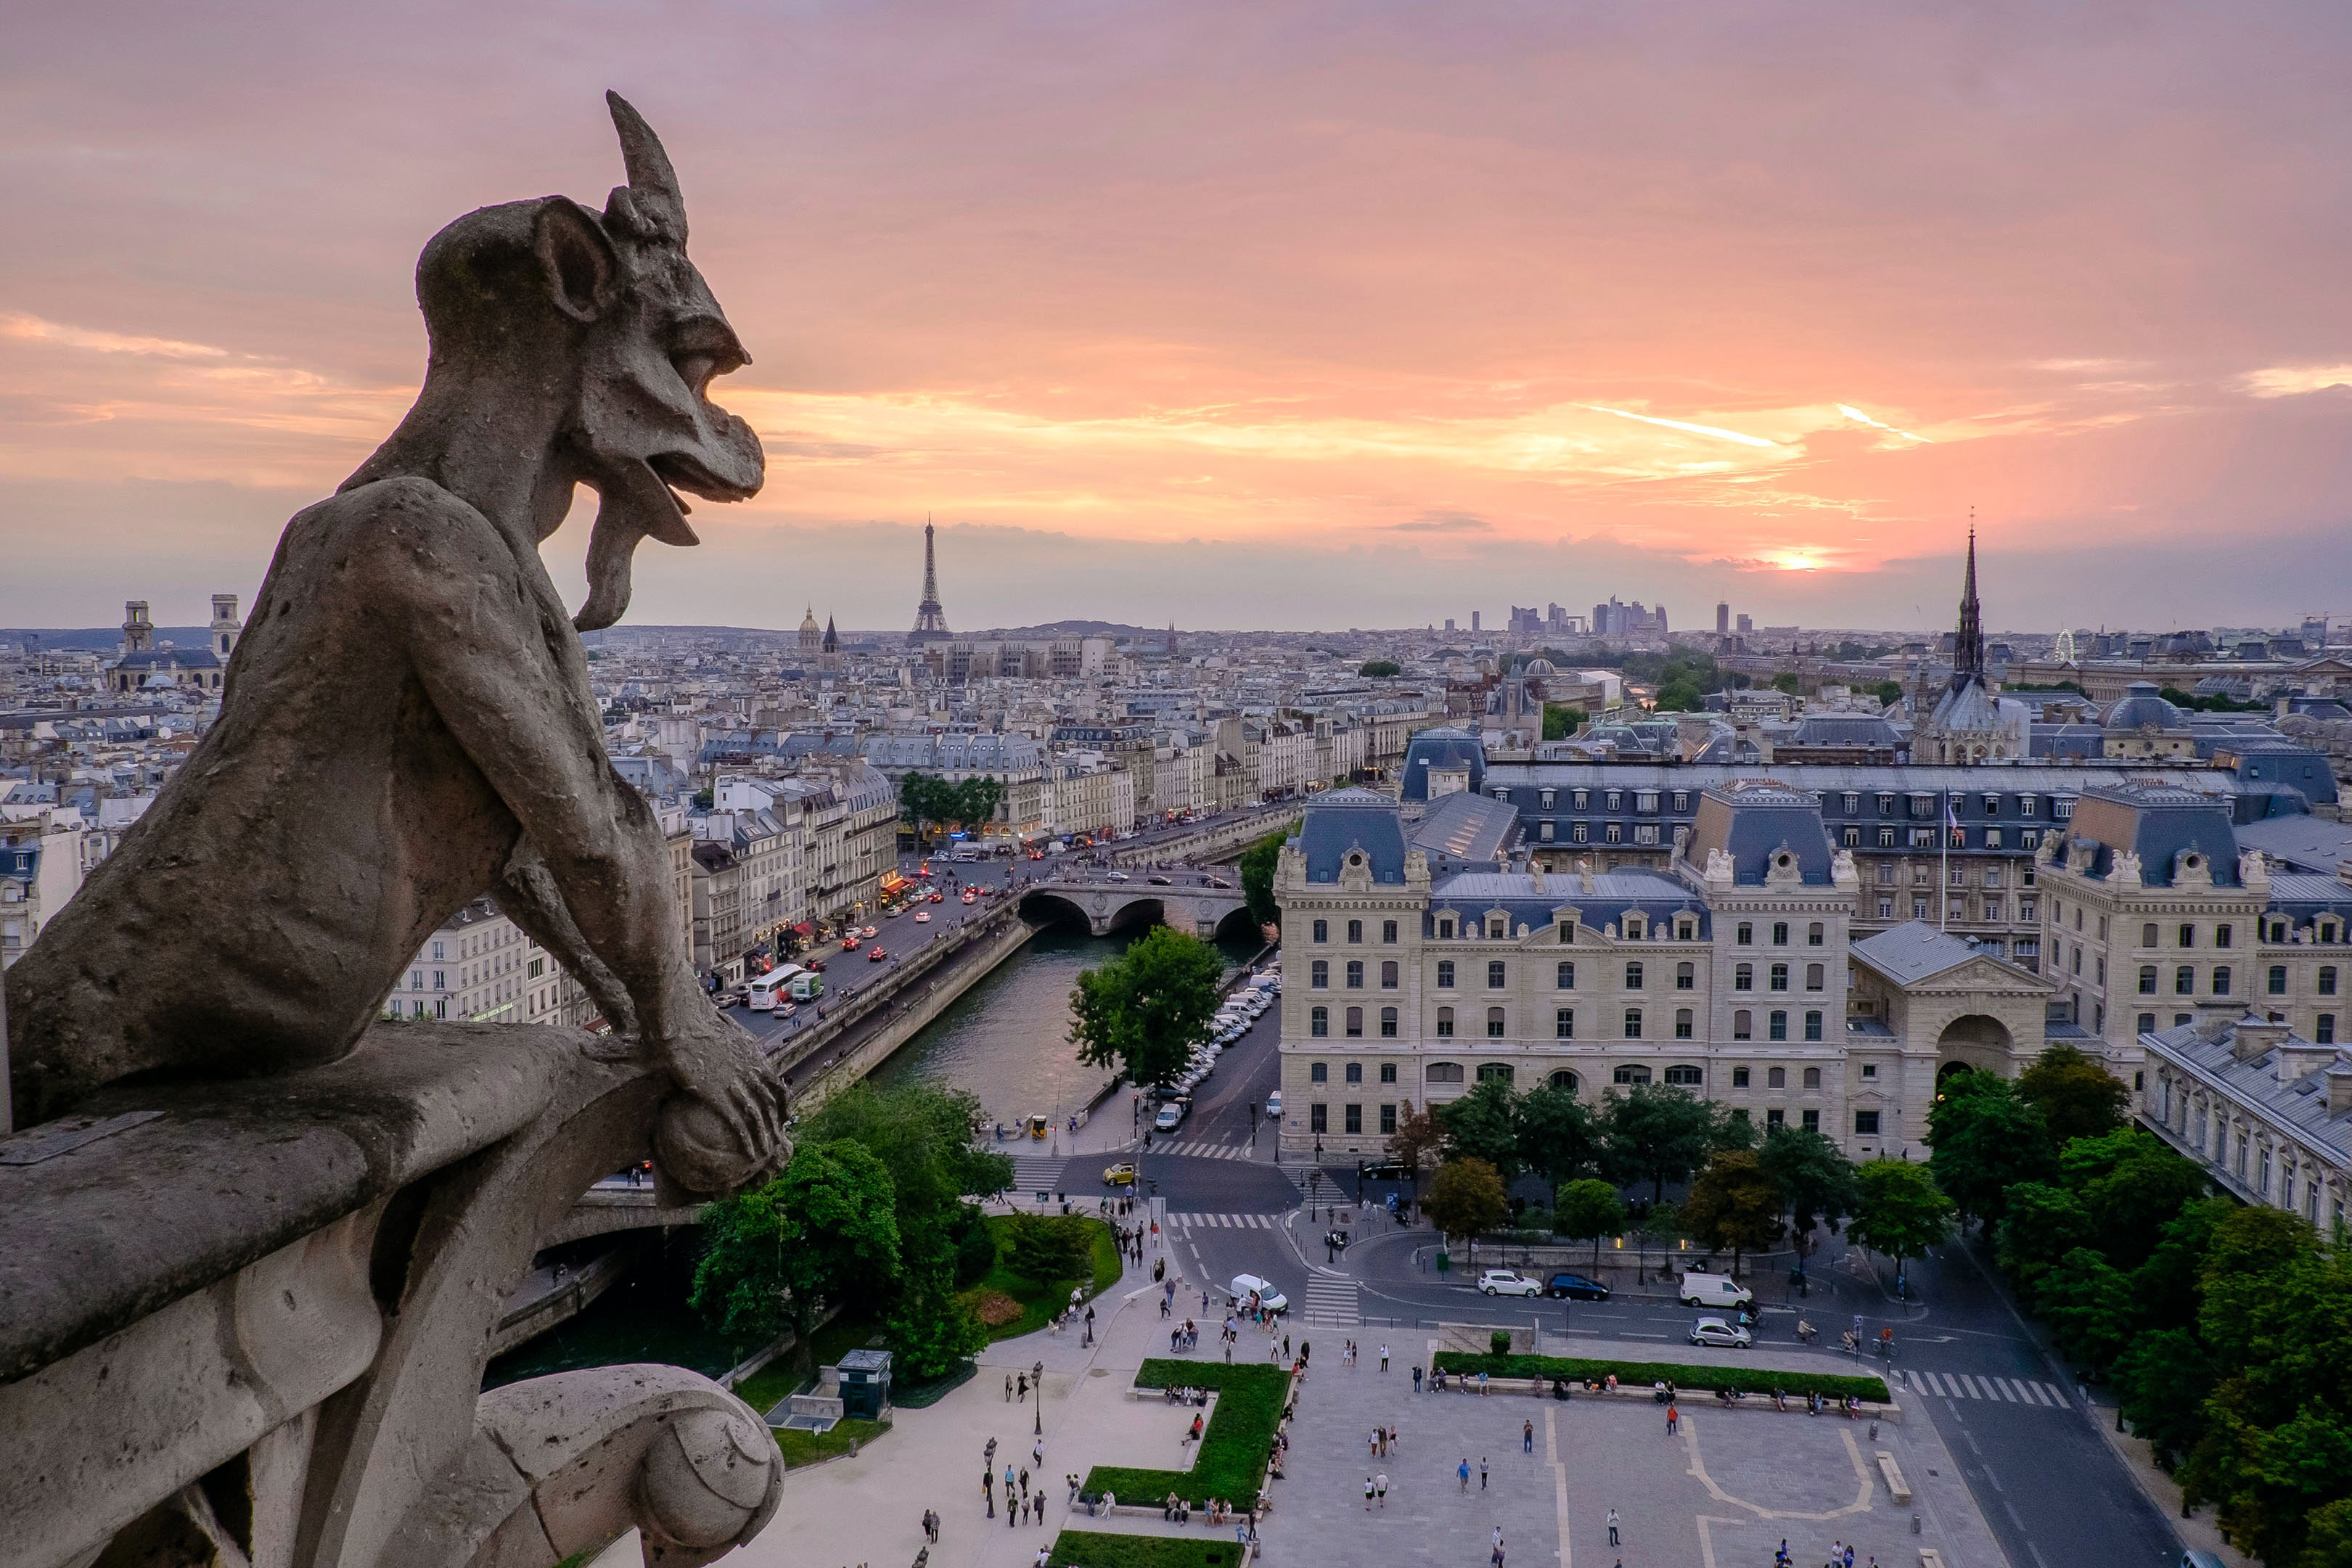 Notre Dame Cathedral Pictures Download Free Images On Unsplash